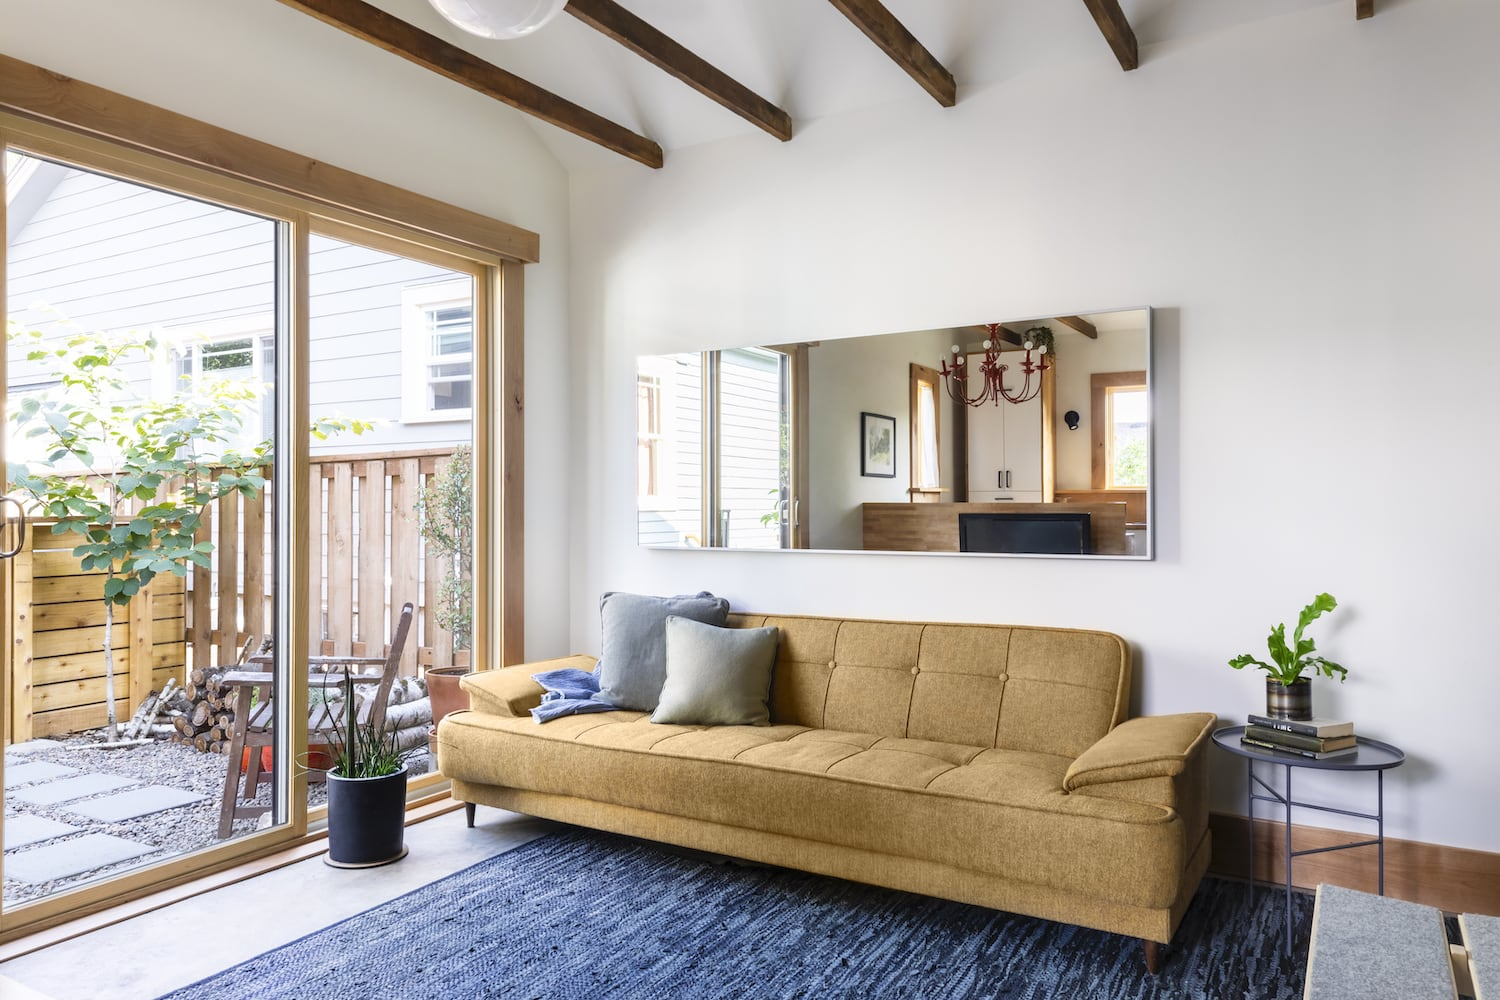 Garage conversion to guest house with couch, sliding doors and natural wood trim